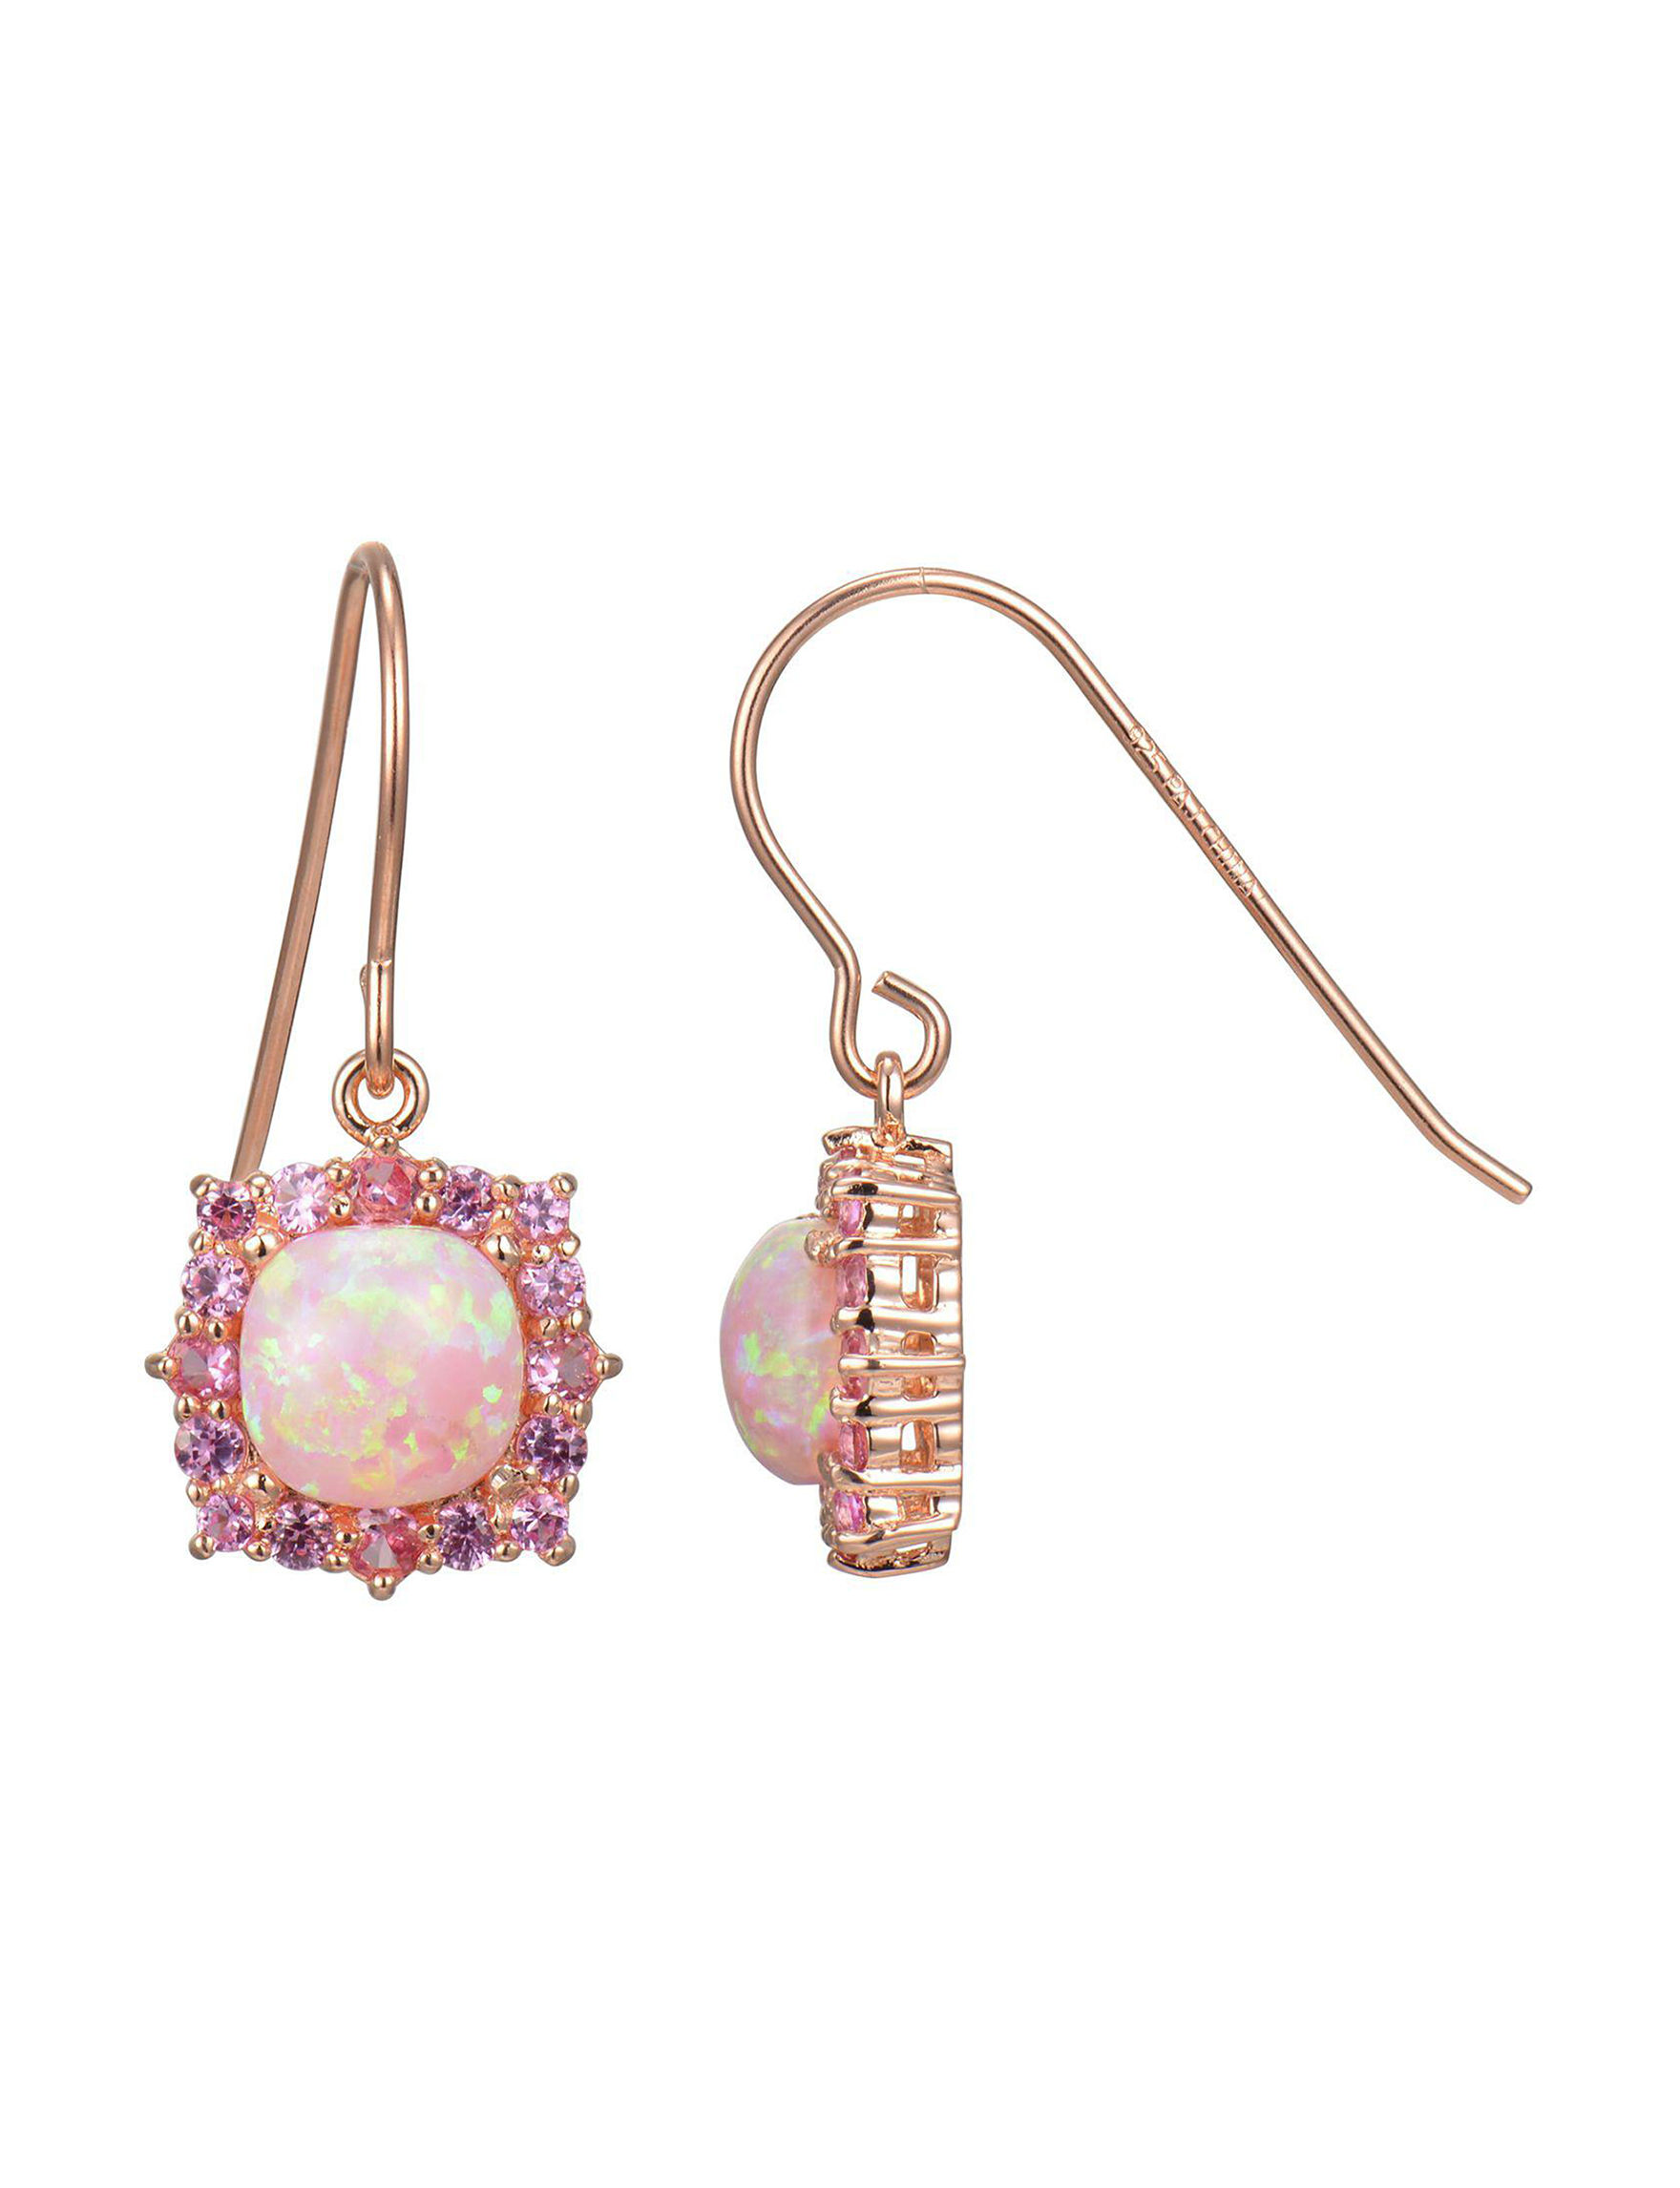 PAJ INC. Rose Gold Earrings Fine Jewelry